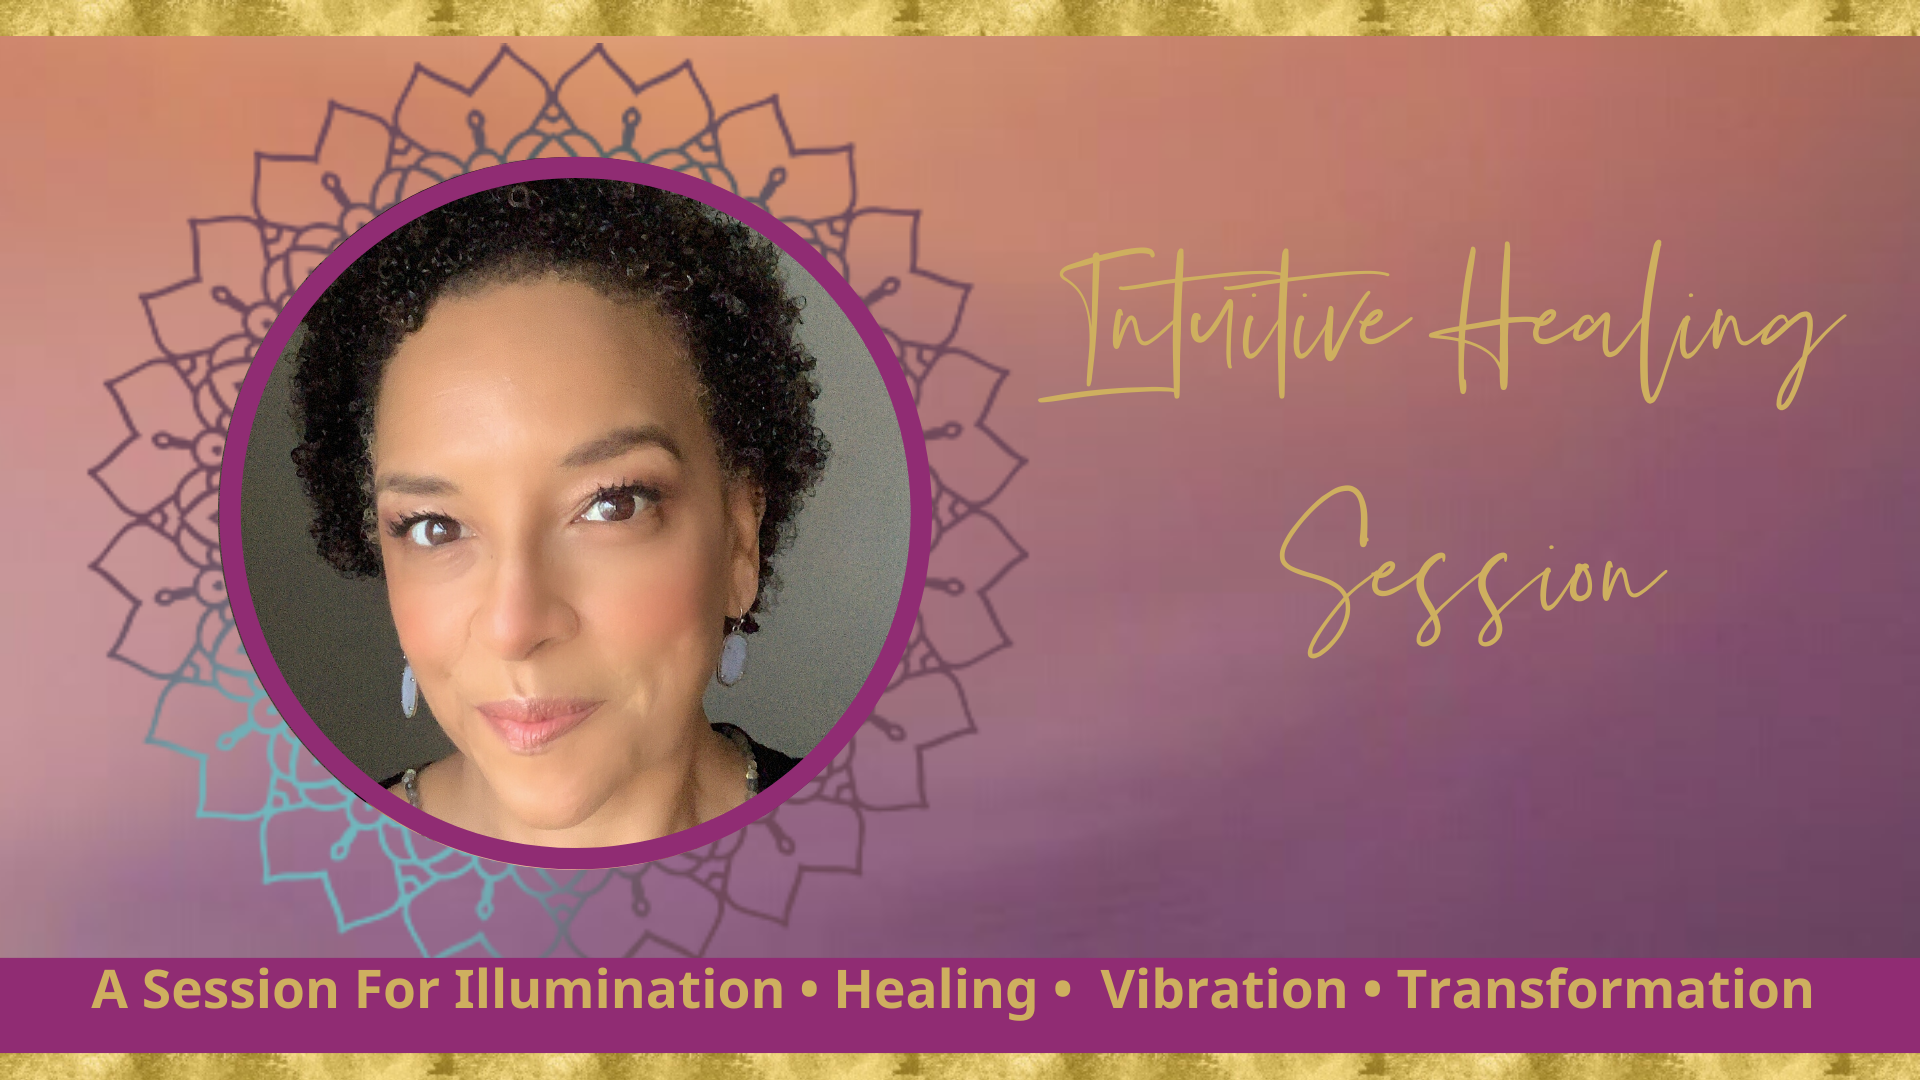 Intuitive Healing Session